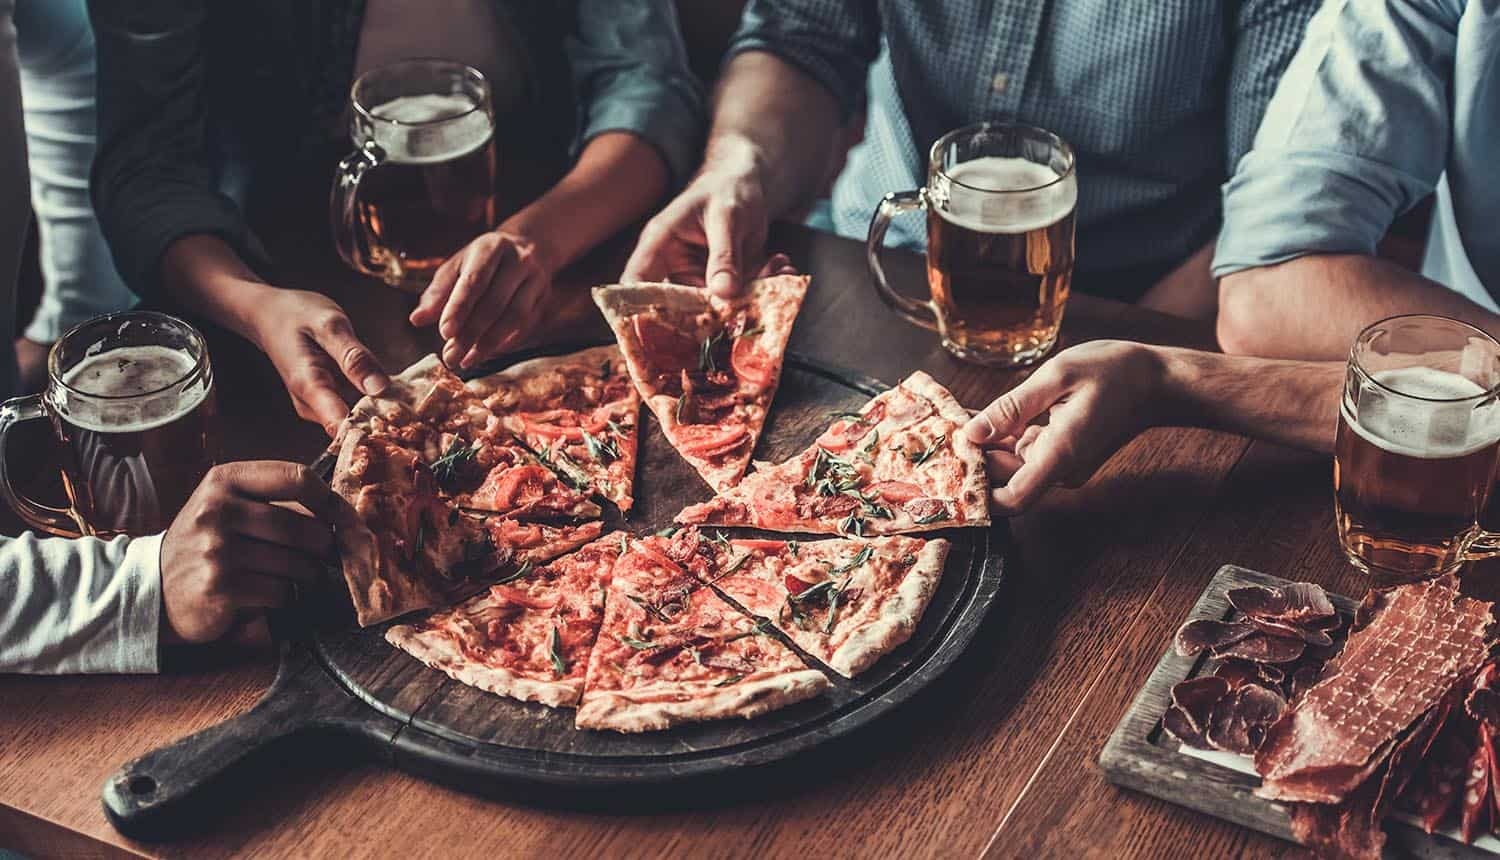 Friends sharing pizza showing WhatsApp privacy policy allowing data sharing with Facebook